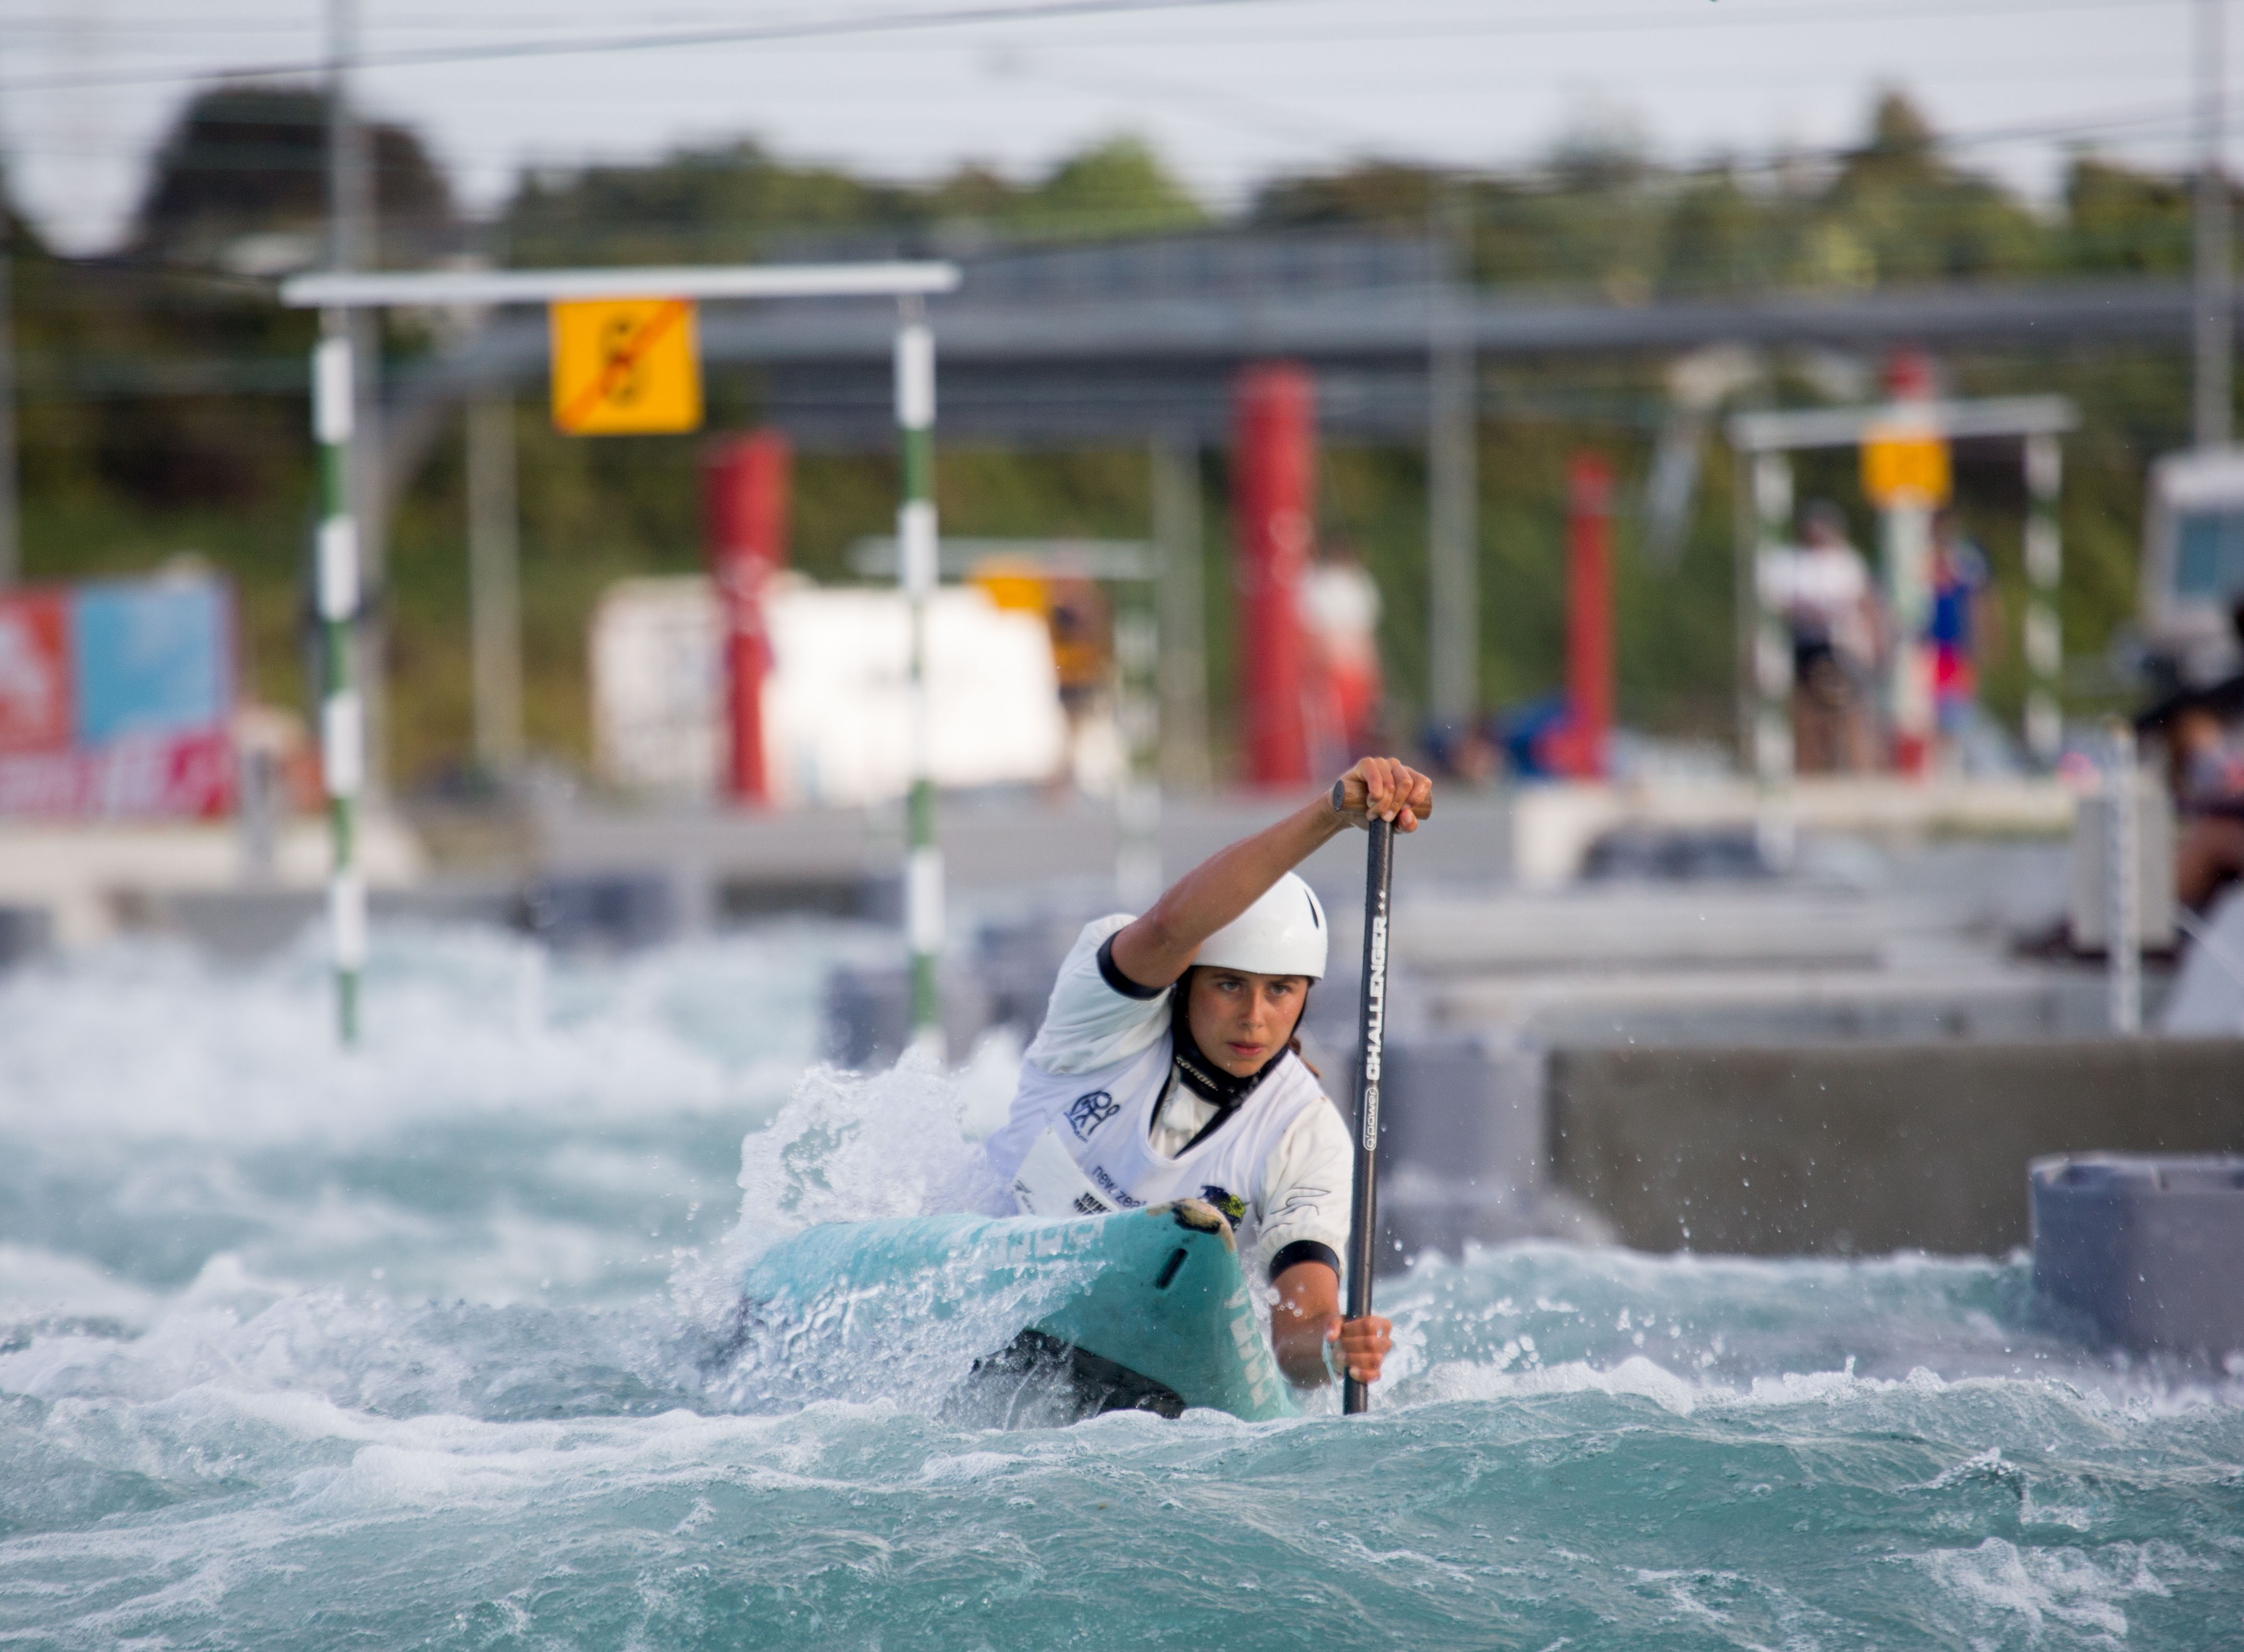 Noemie Fox (Australia) - women's C1© by Jamie Troughton/ Dscribe Media /Kayaksession.com